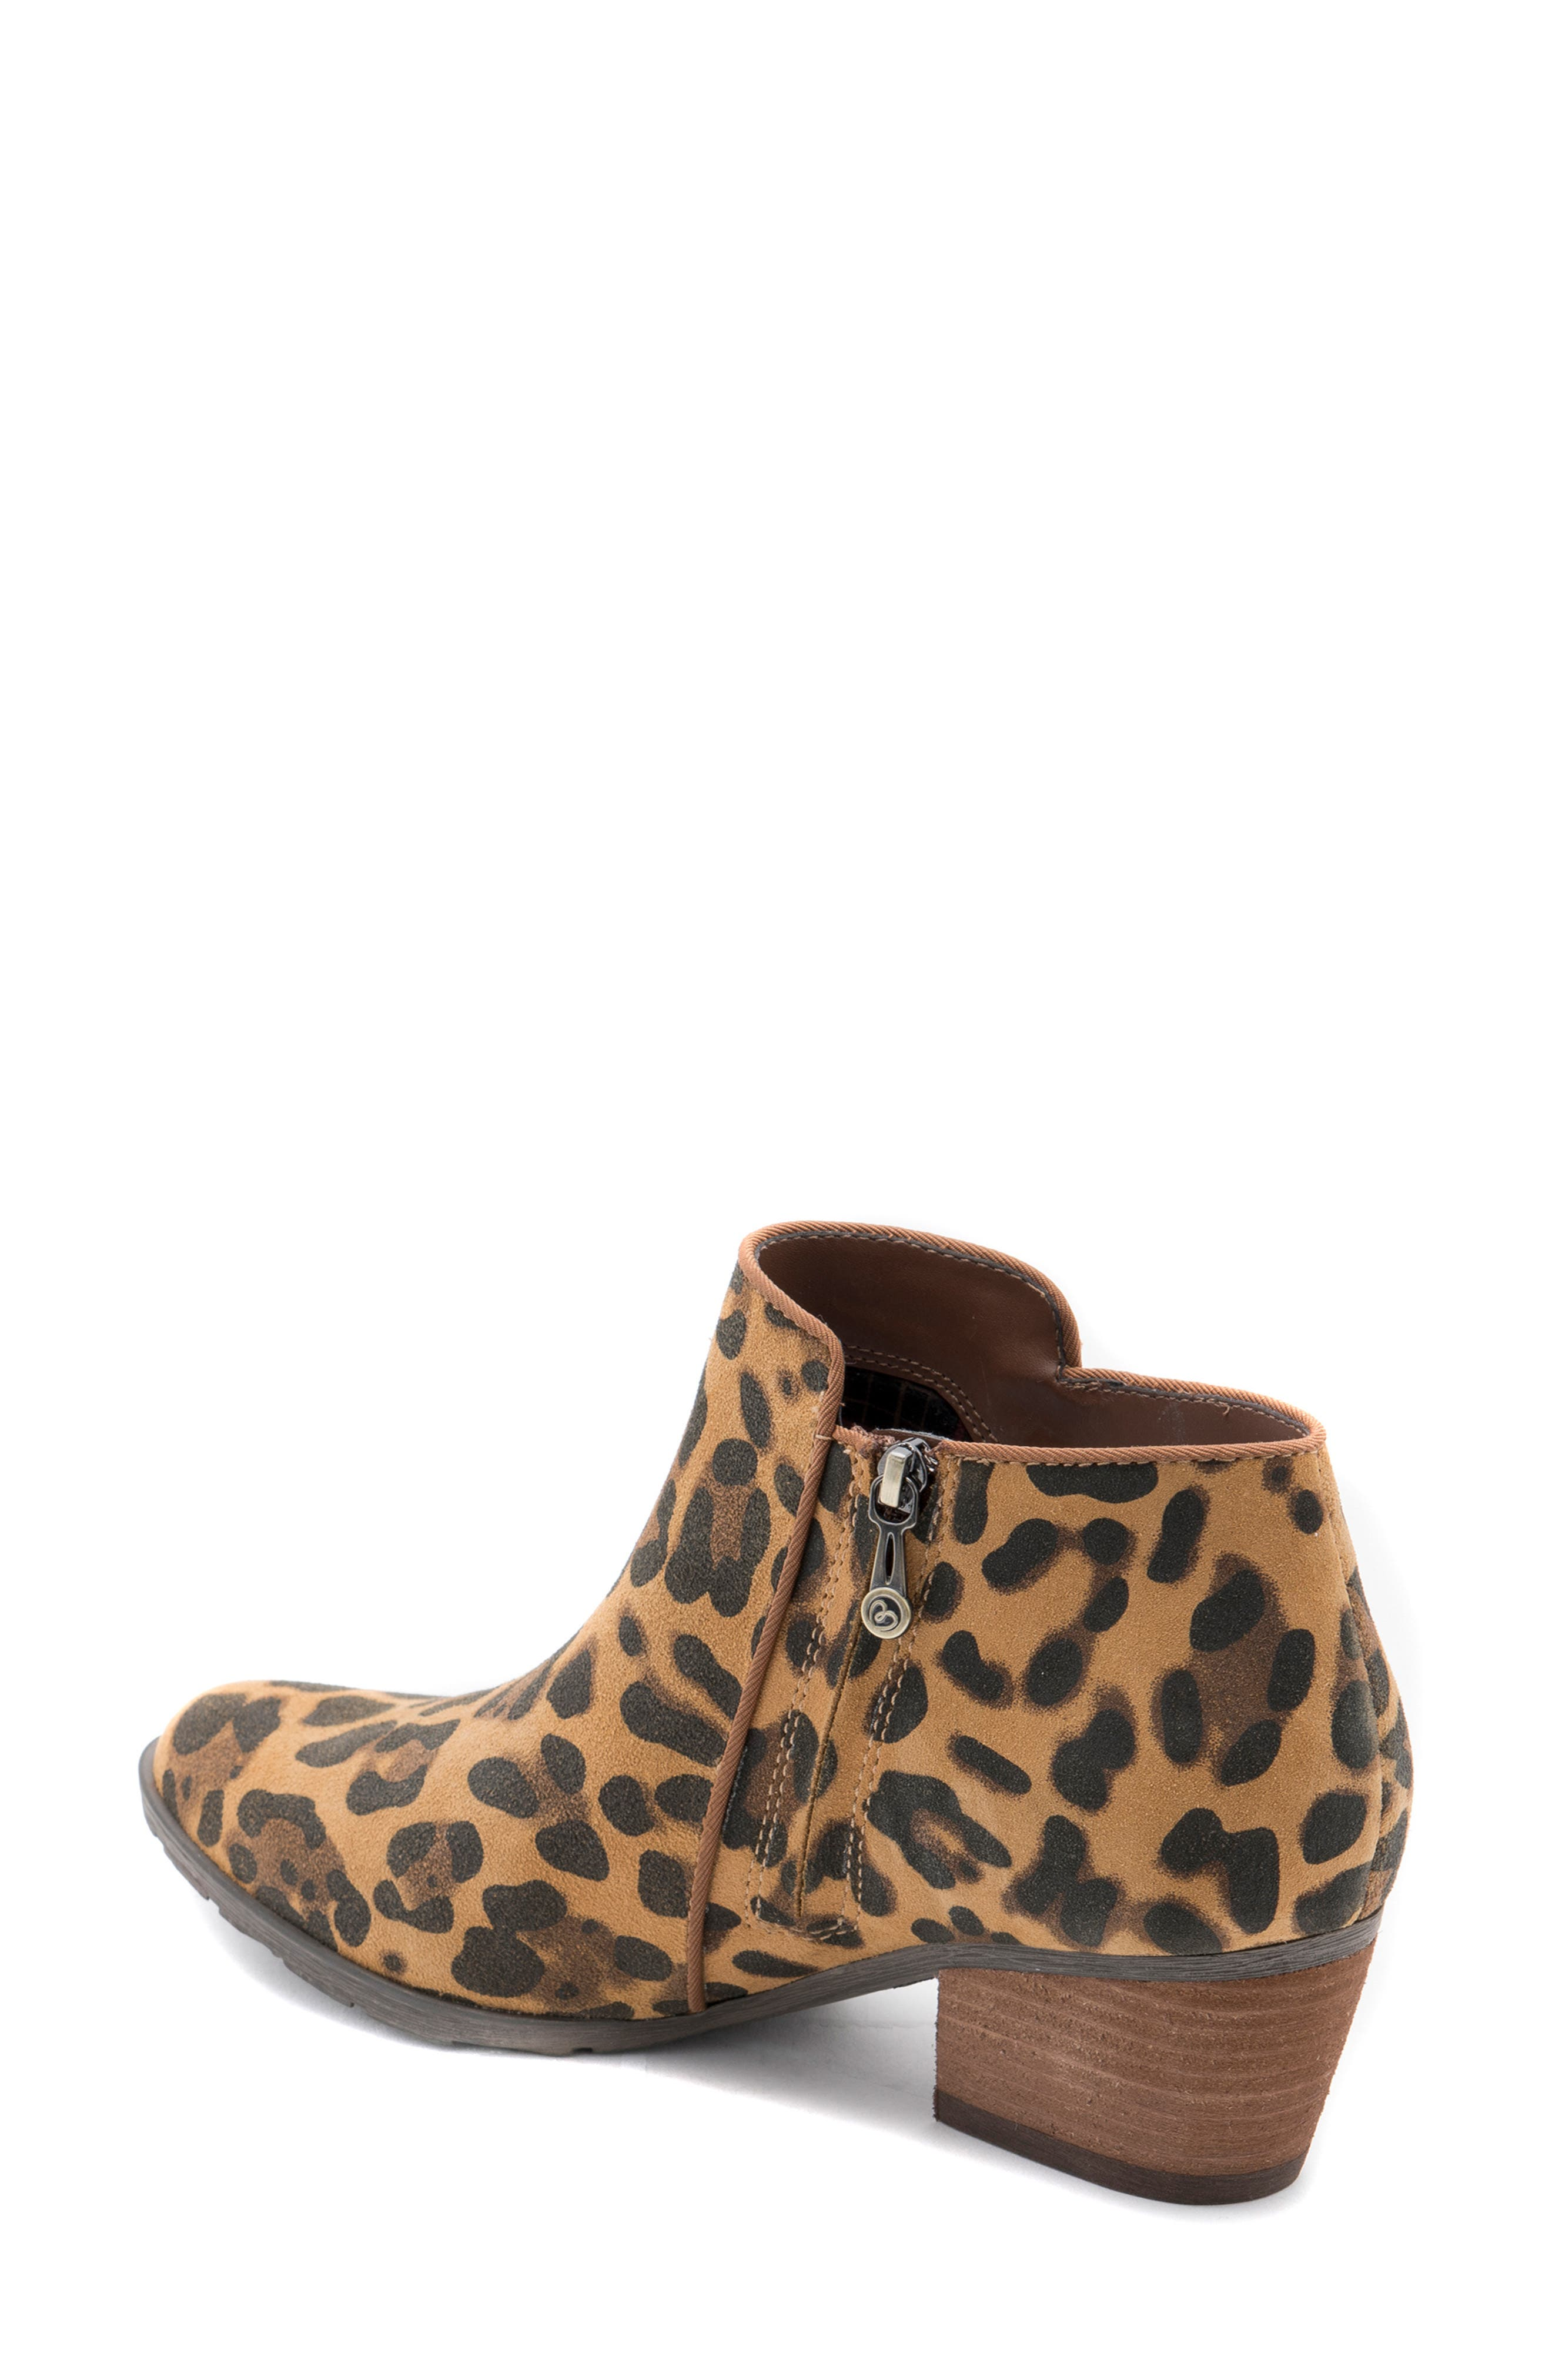 9c175ddd30d84 womens side zip ankle boots | Nordstrom